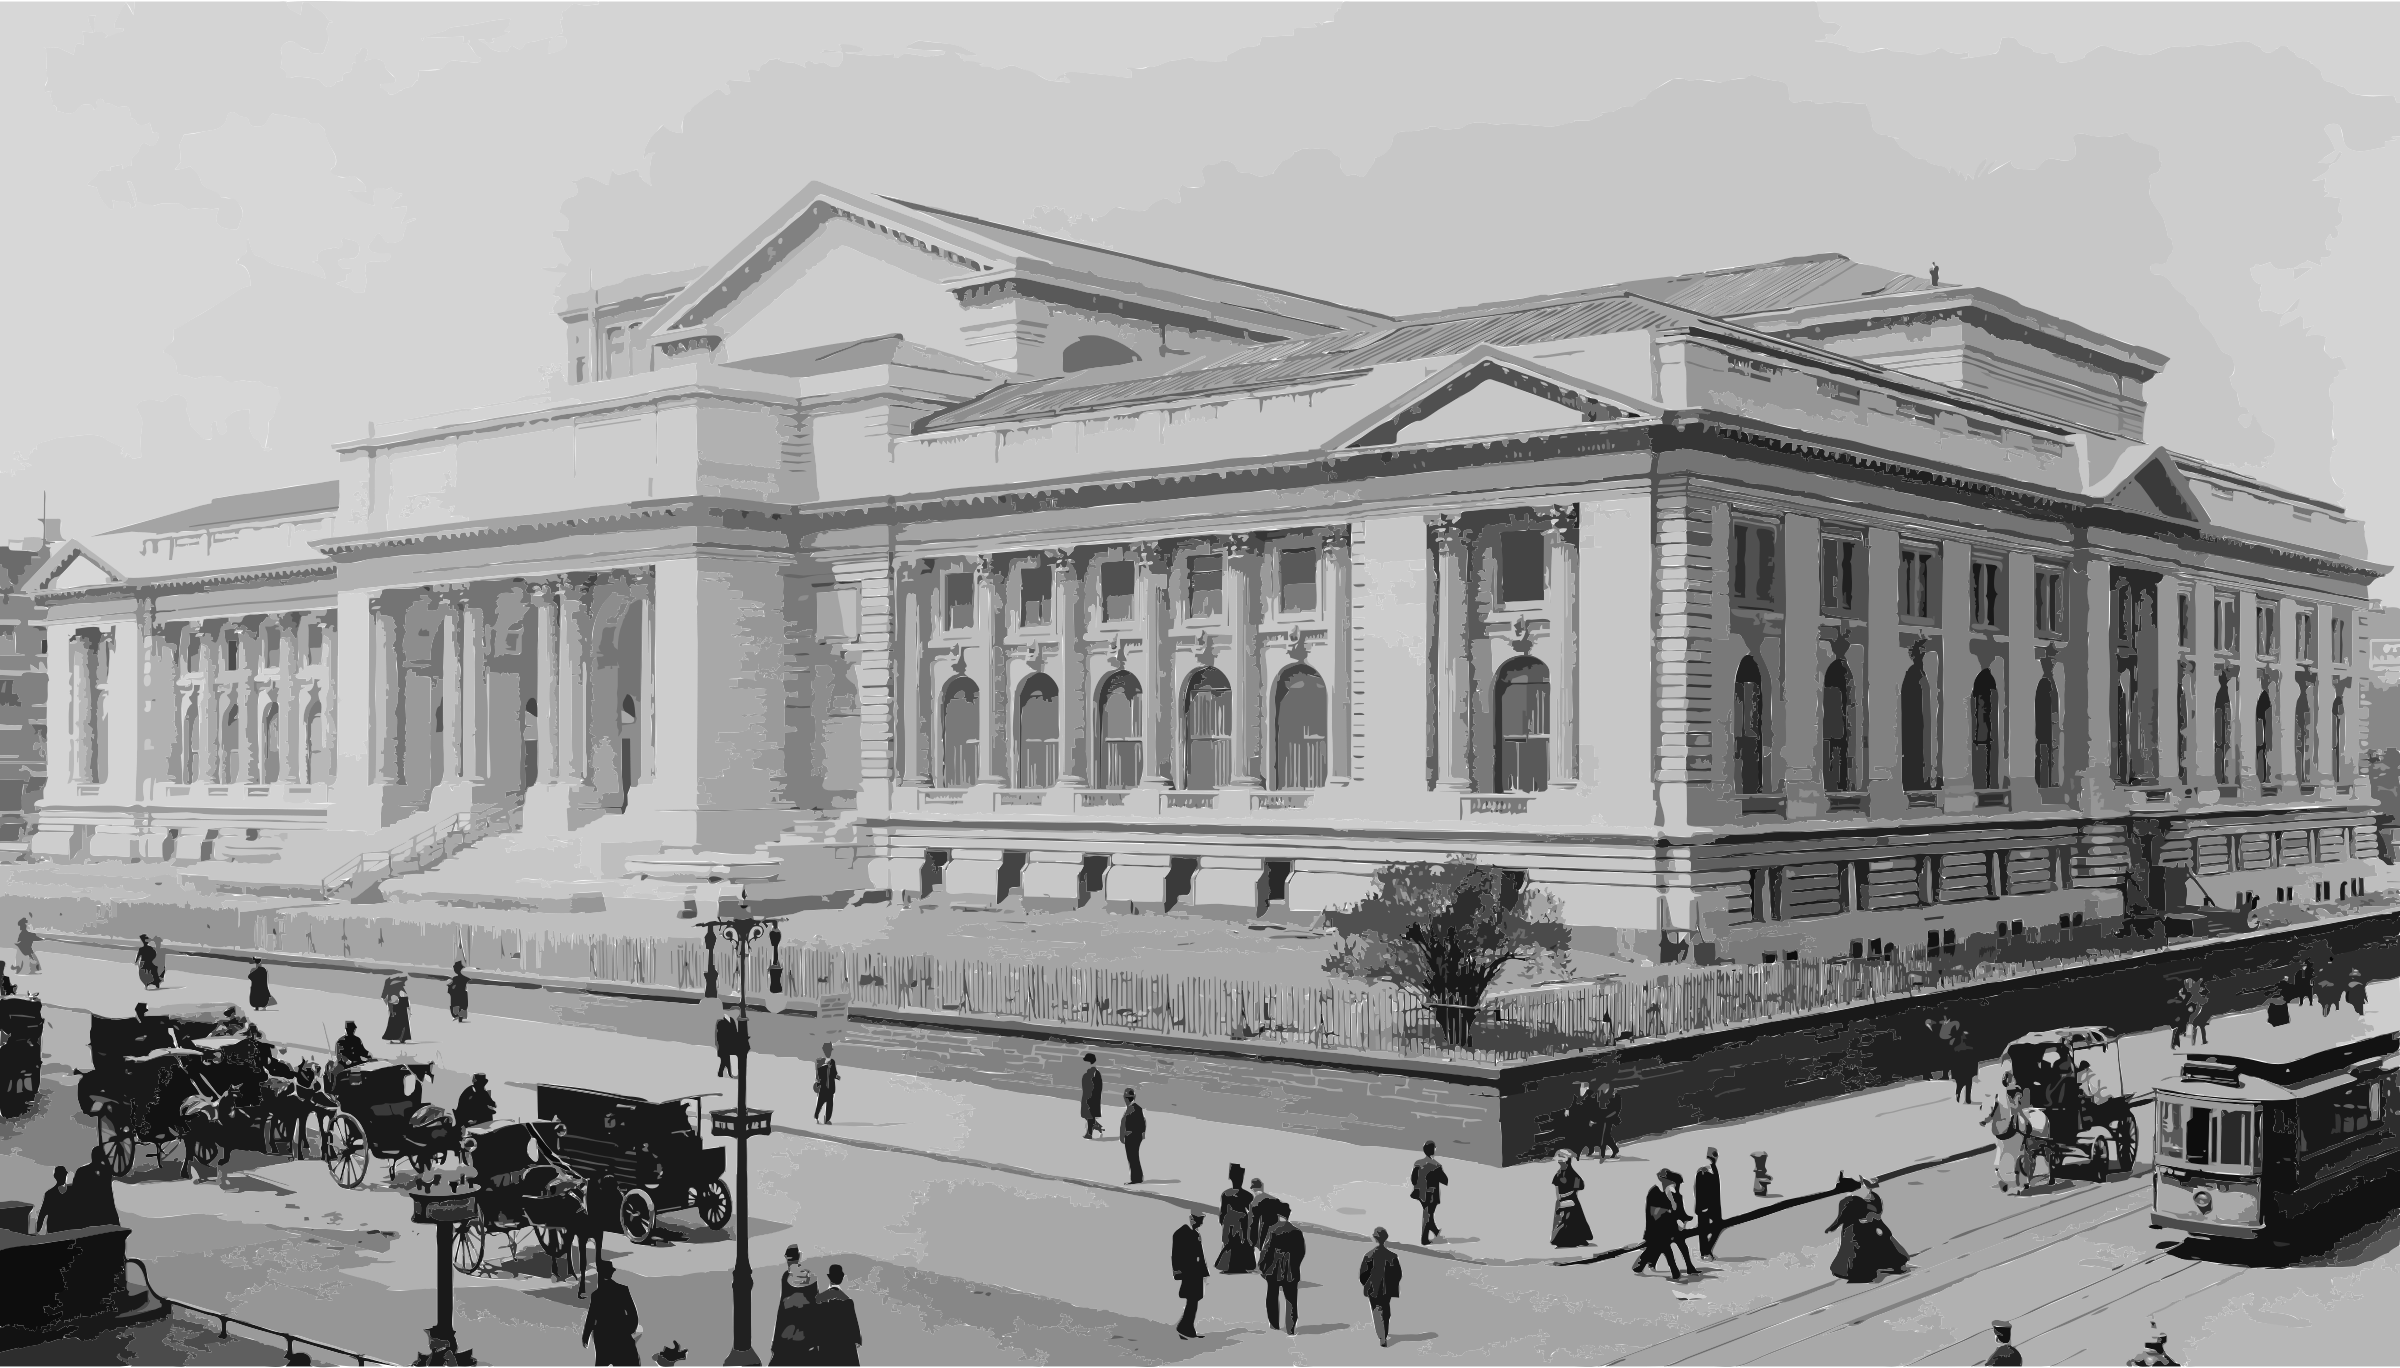 New York Public Library 1908c by 3wezo5+6ee0503pz7bvs